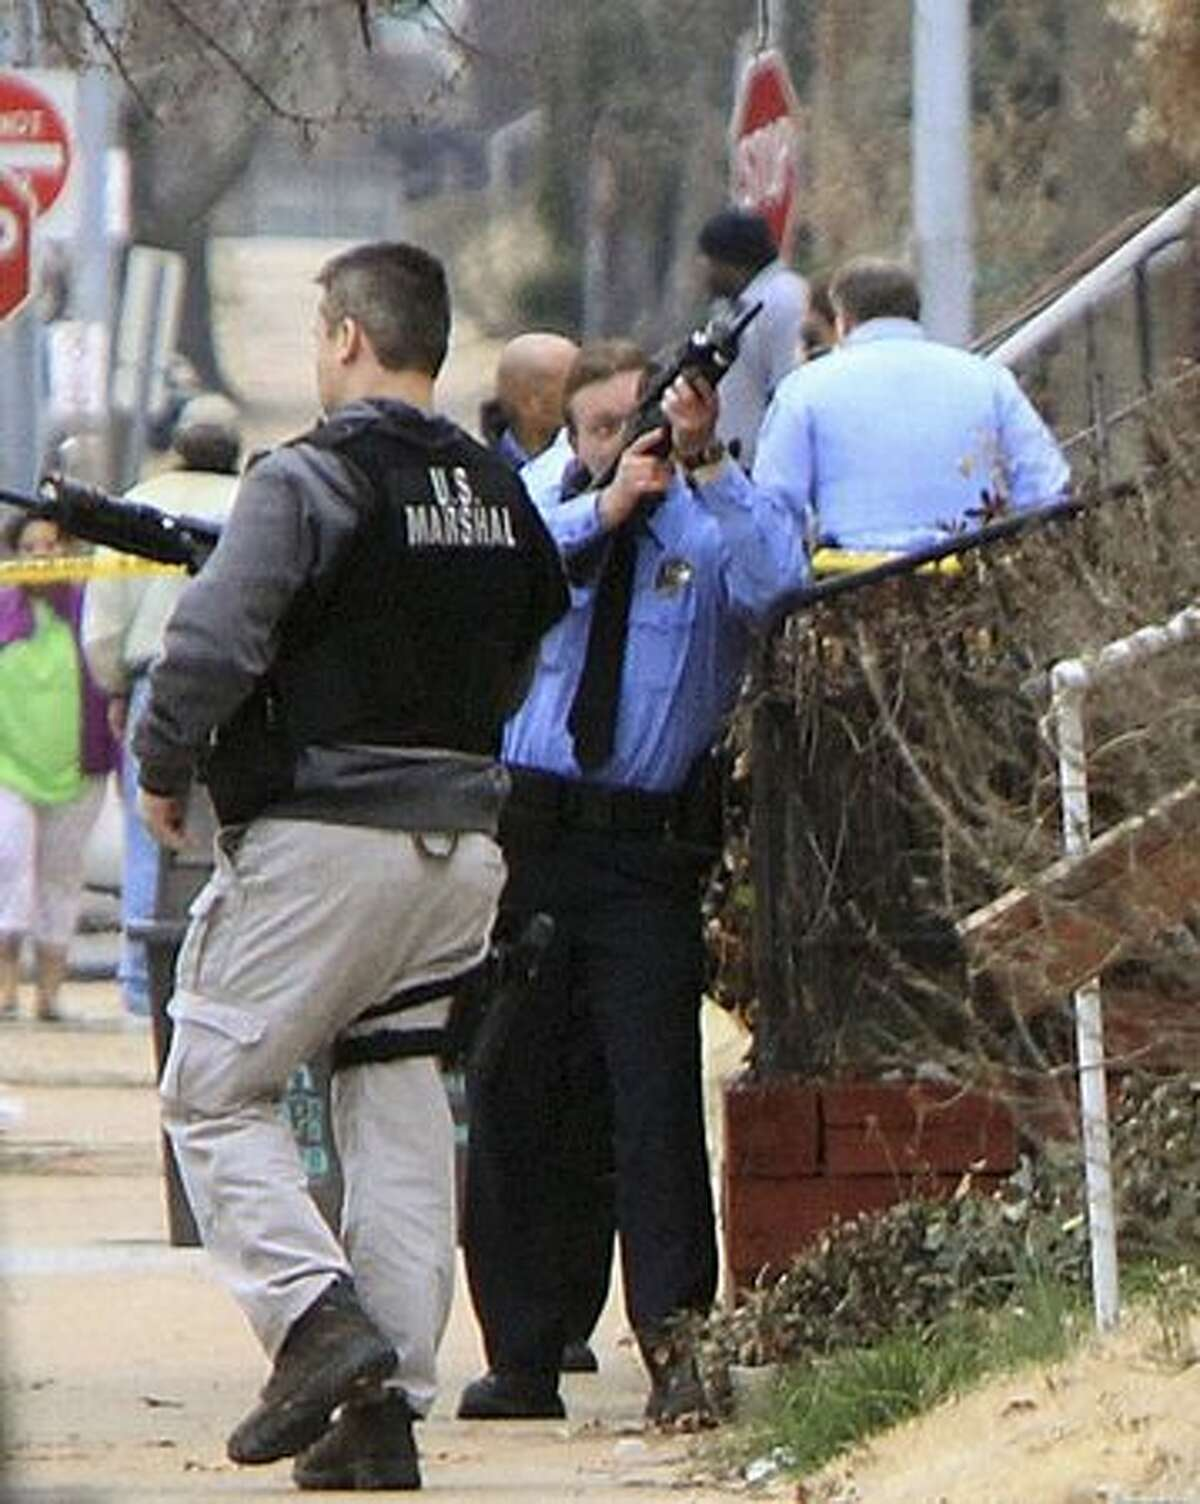 St. Louis police search for a gunman Tuesday in St. Louis. St. Louis police say two federal marshals and a police officer wered shot during a gunfight that left another man dead at a home. (AP Photo/St. Louis Post-Dispatch, Christian Gooden)